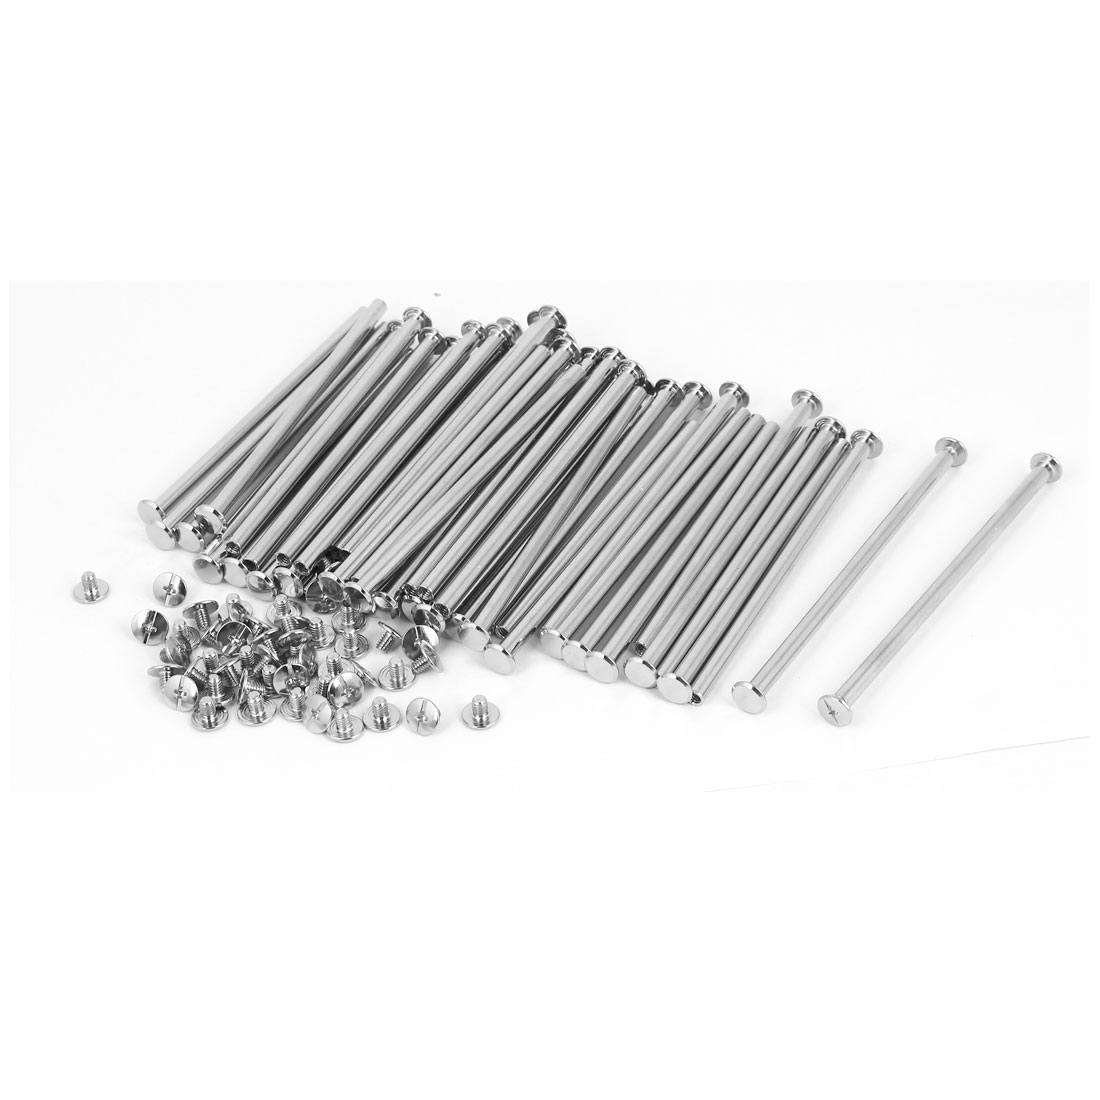 M5 x 105mm Books Albums Metal Binding Chicago Screws Posts 50 Pcs